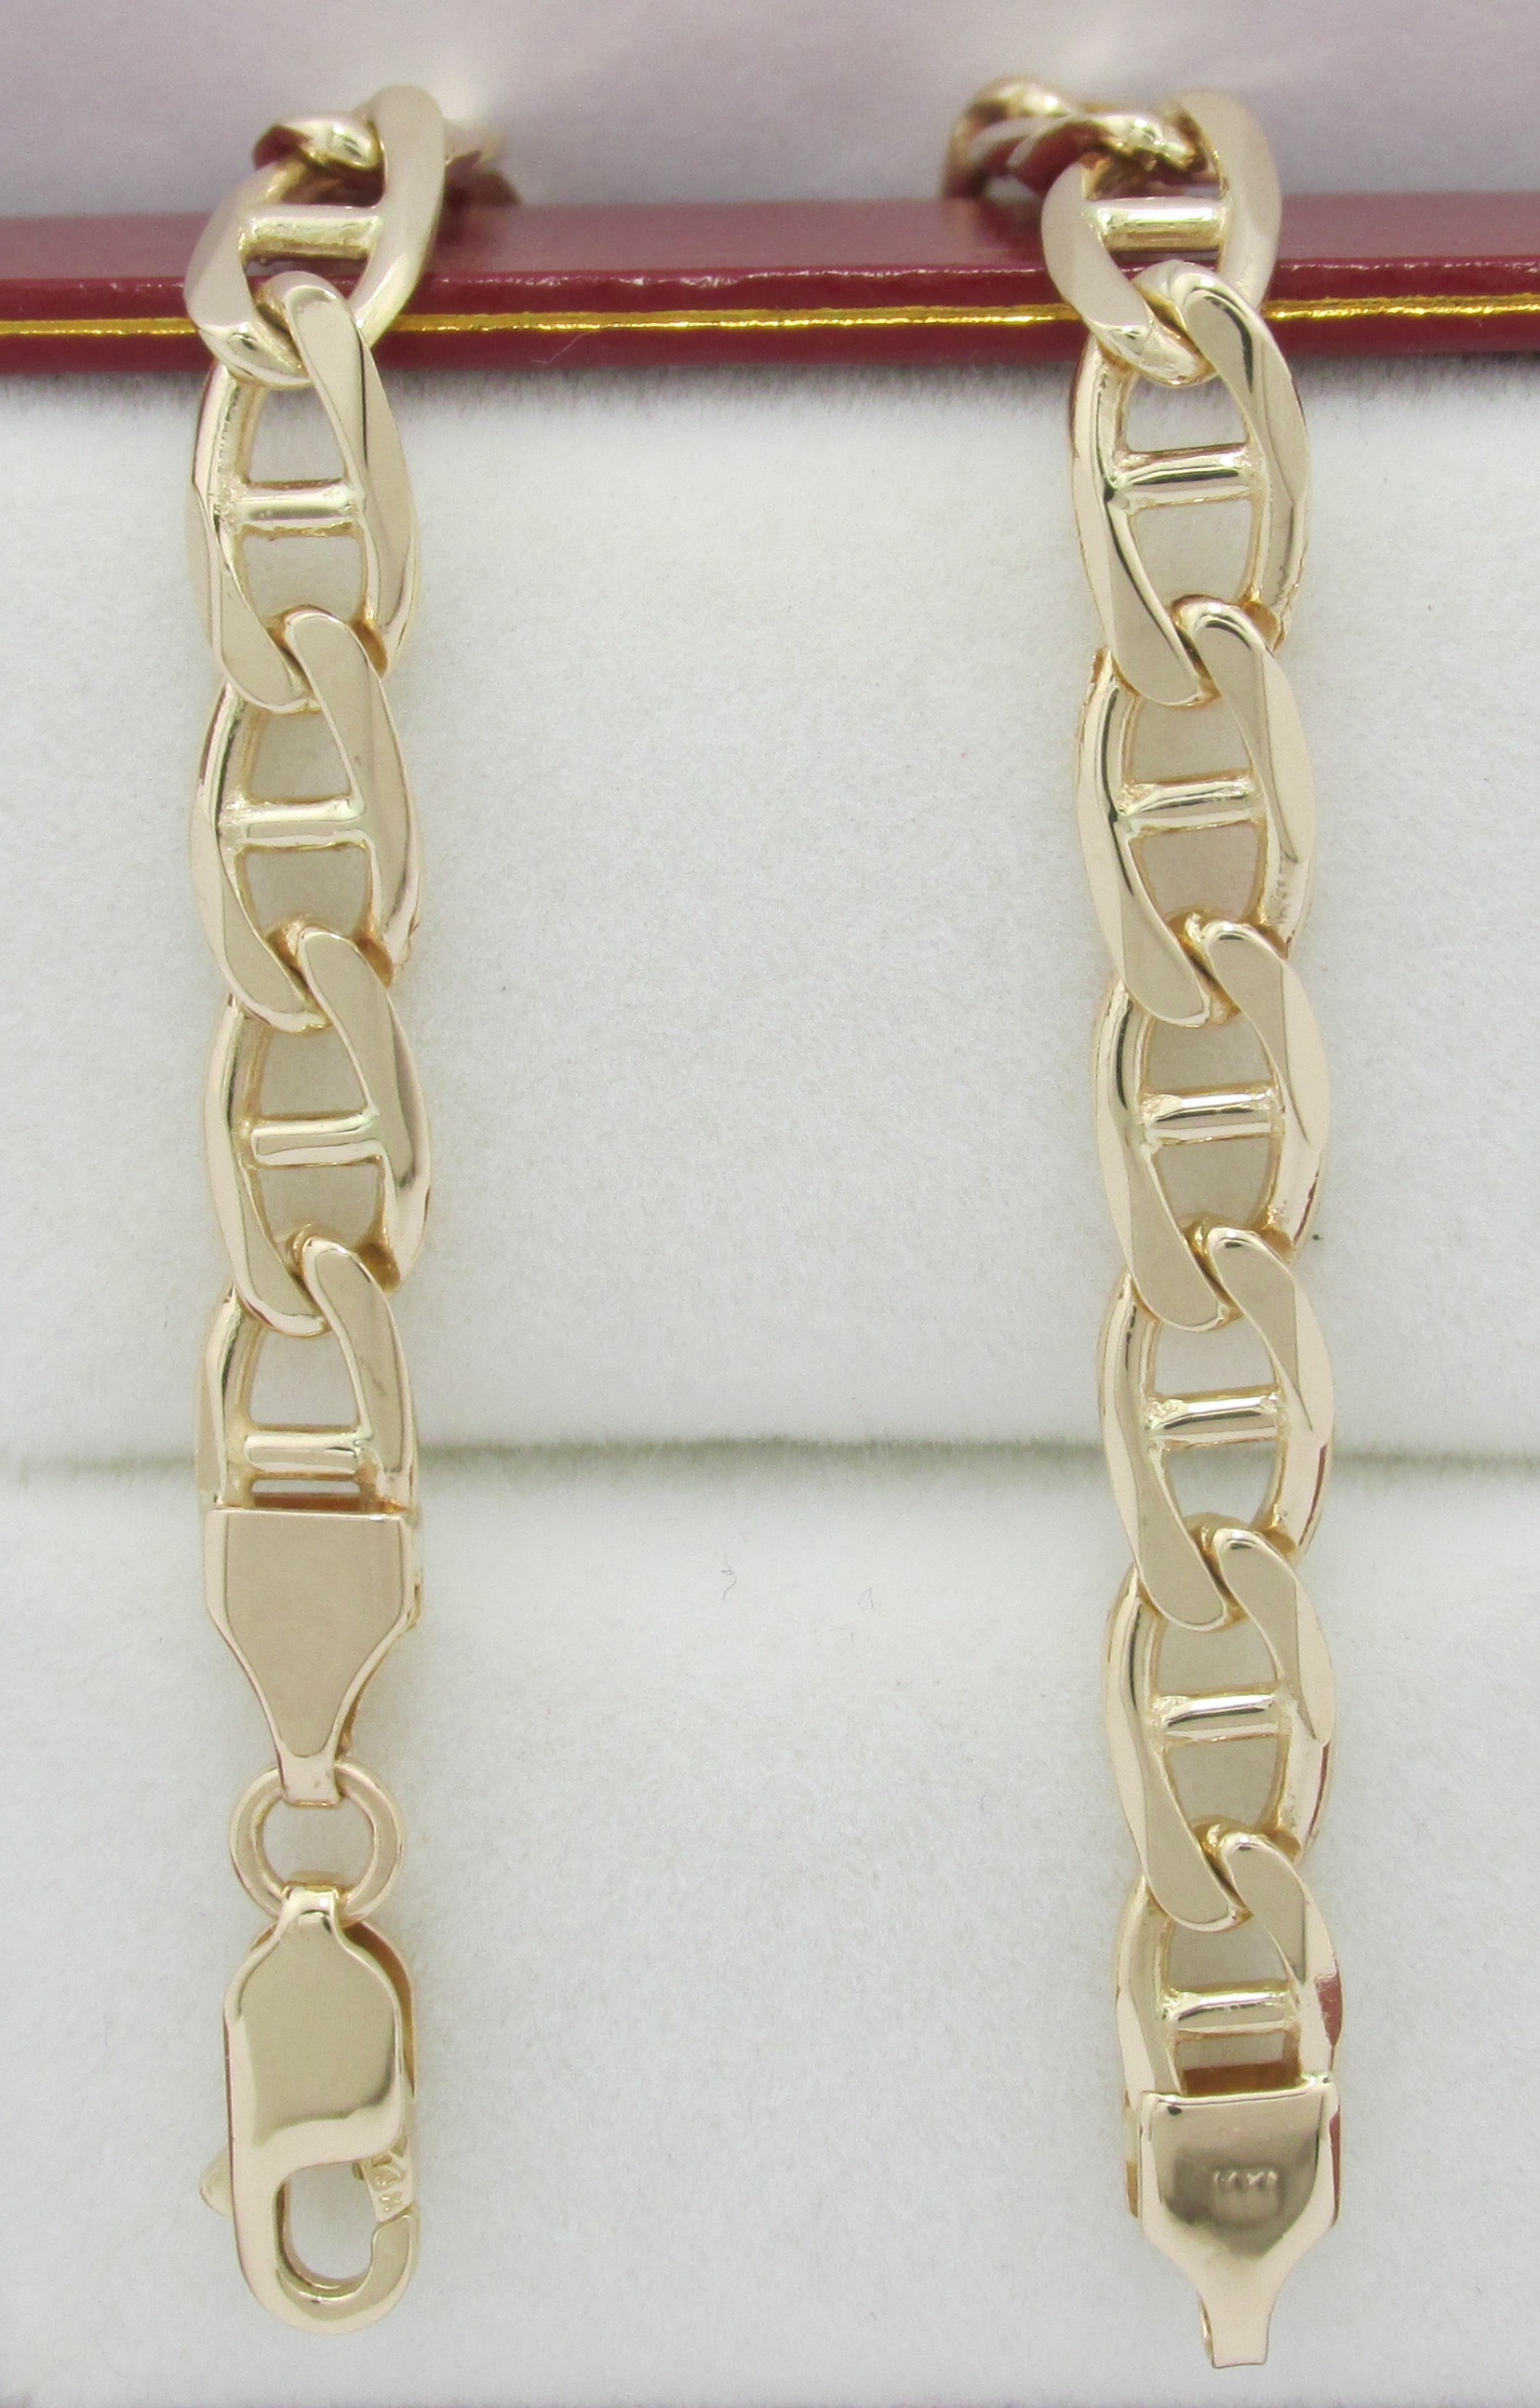 01bd9cfe70884 14K Gold Anchor/Marine Chain Link Bracelet w/ Lobster Claw Clasp